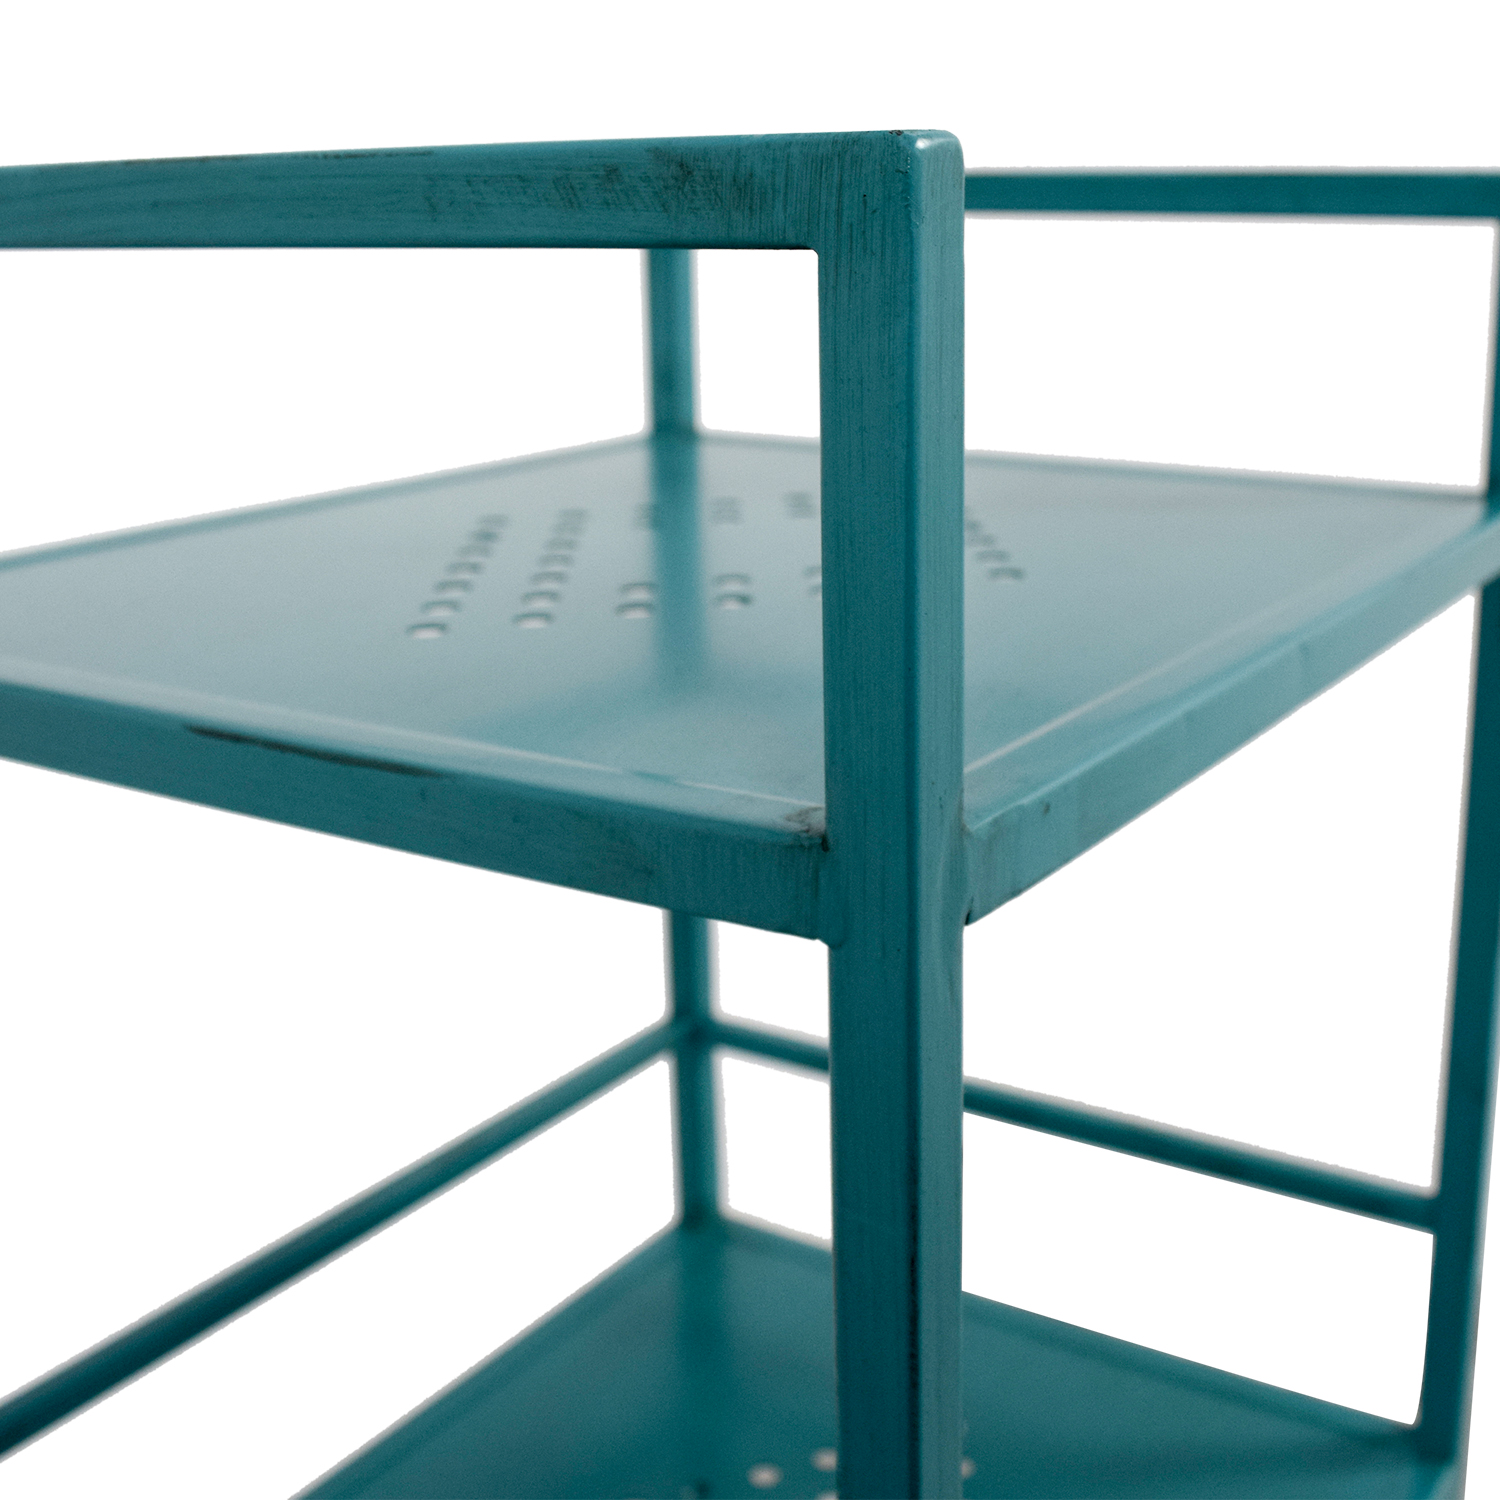 Pier 1 Imports Pier 1 Imports Weldon Turquoise Metal High Shelf second hand